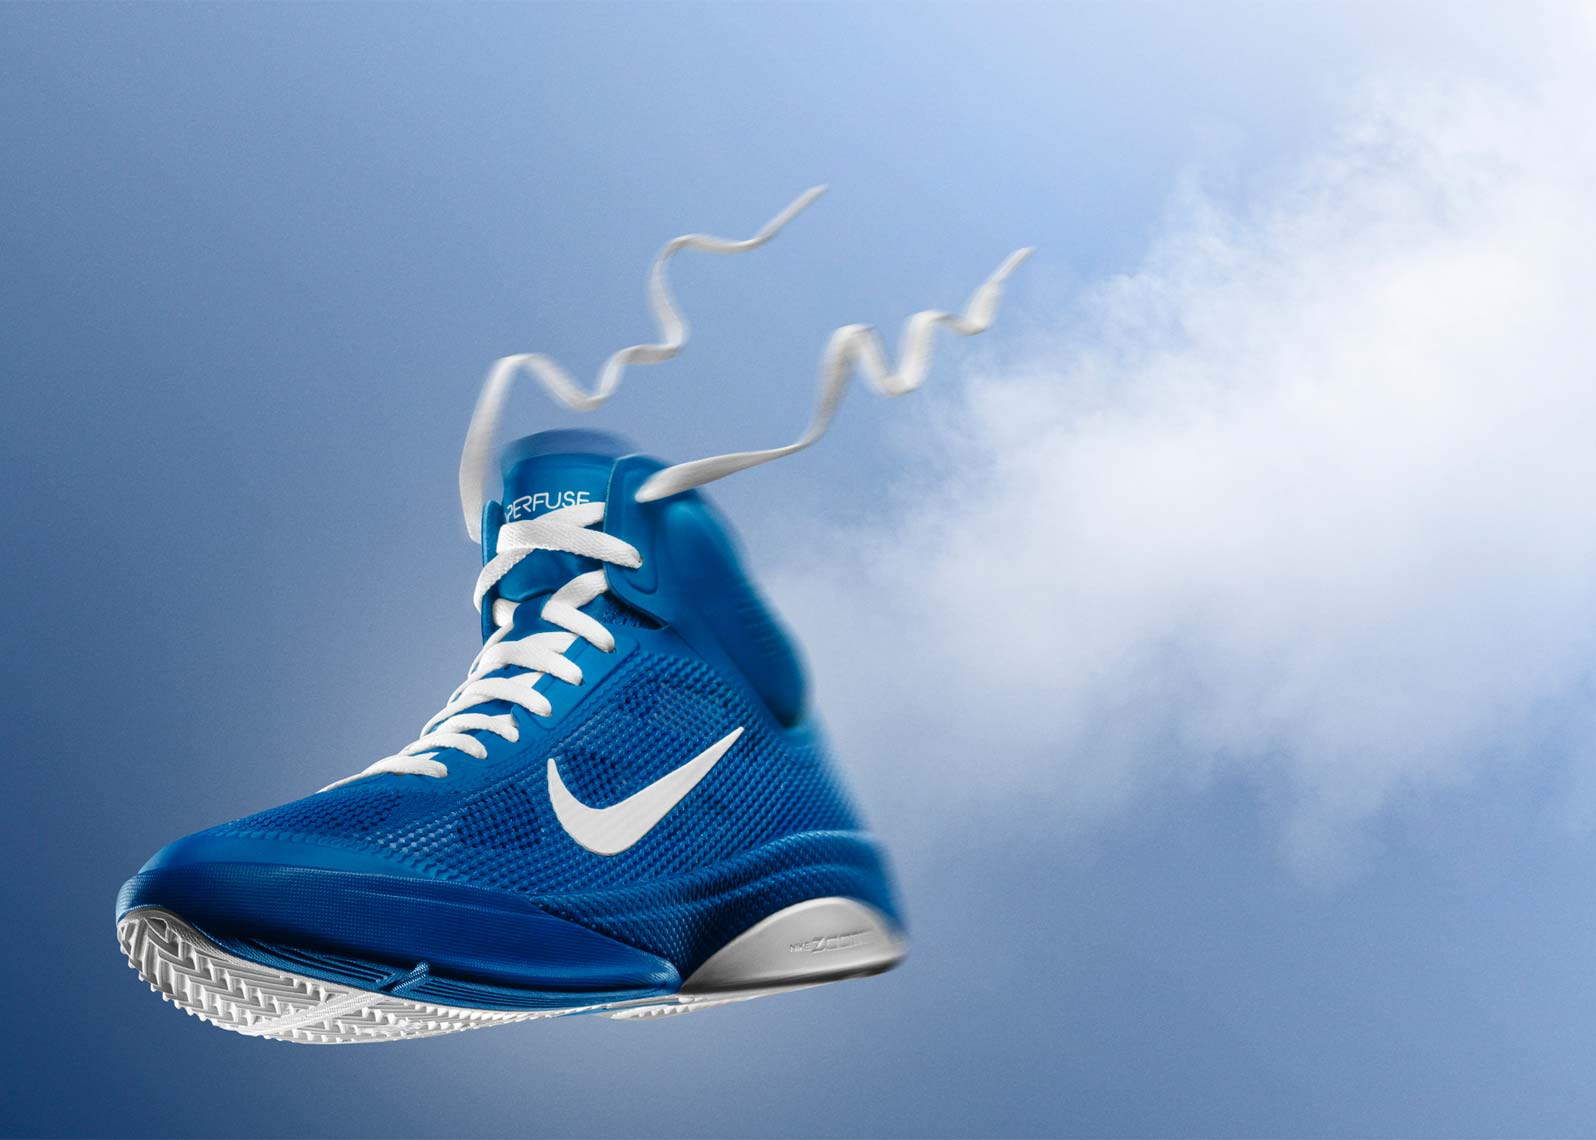 nike basketball hyperfuse shoe on blue background